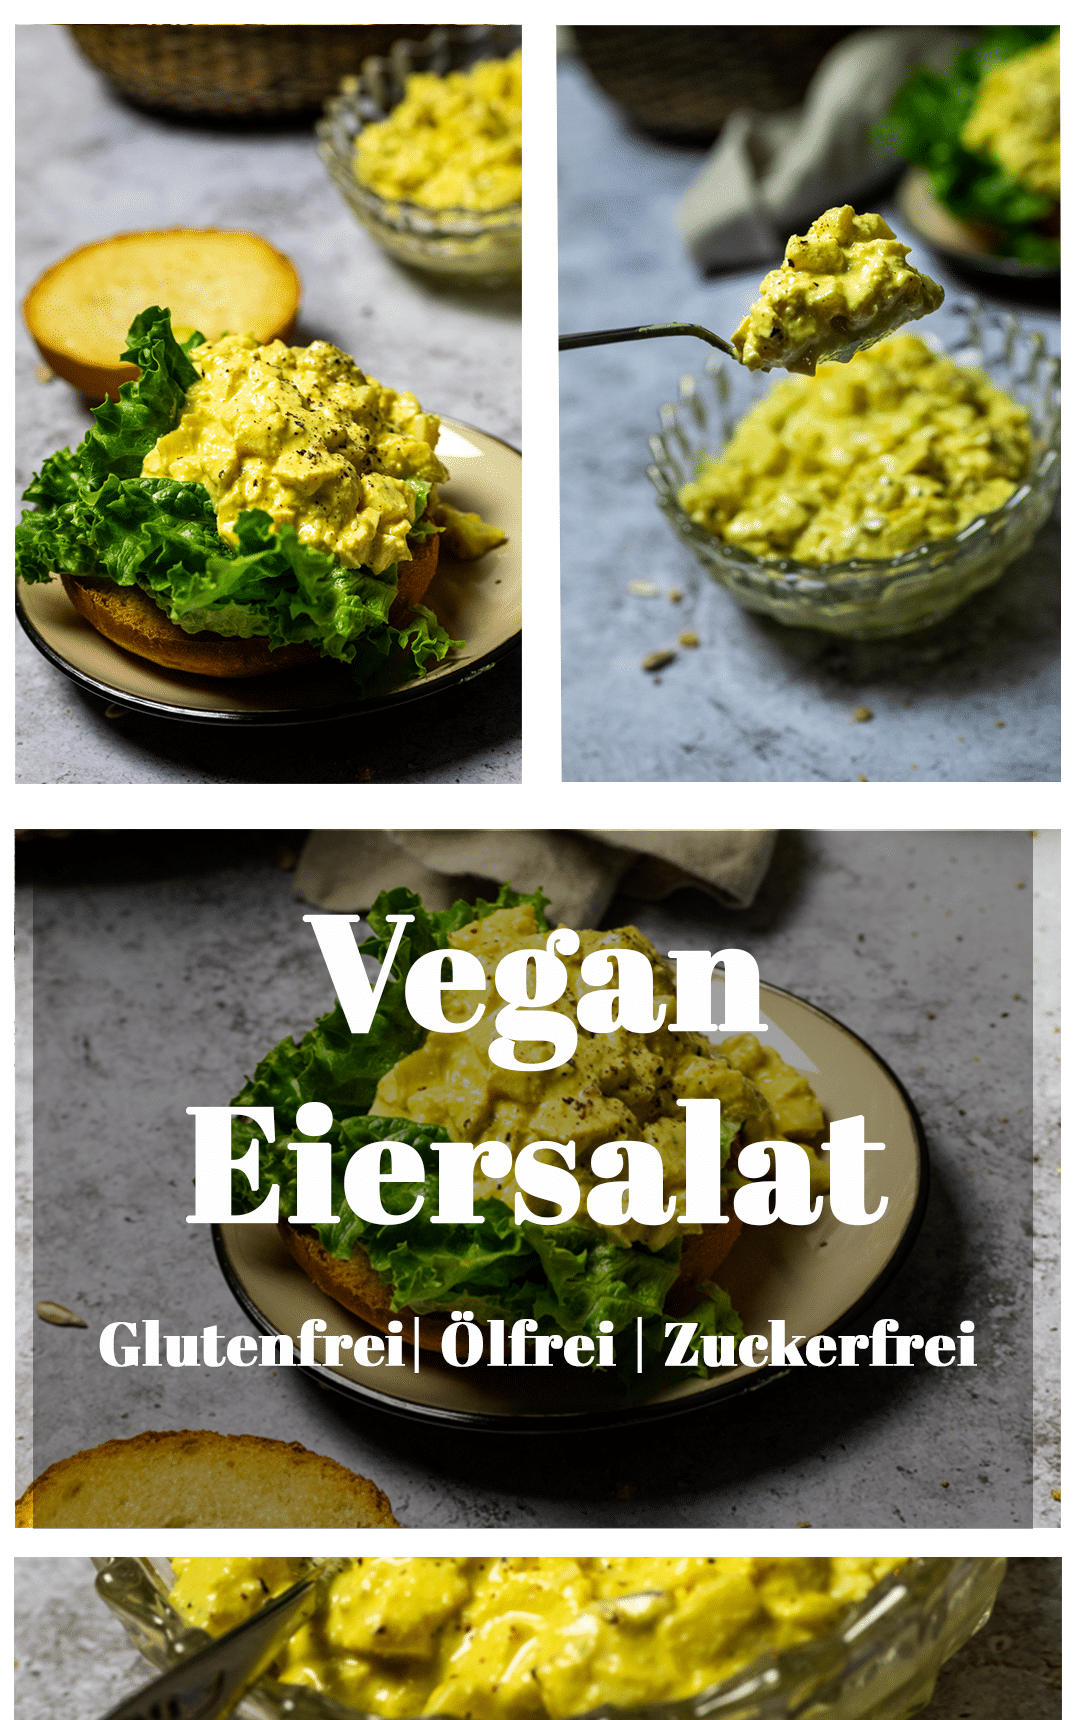 Graphic of vegan egg salad with text layover